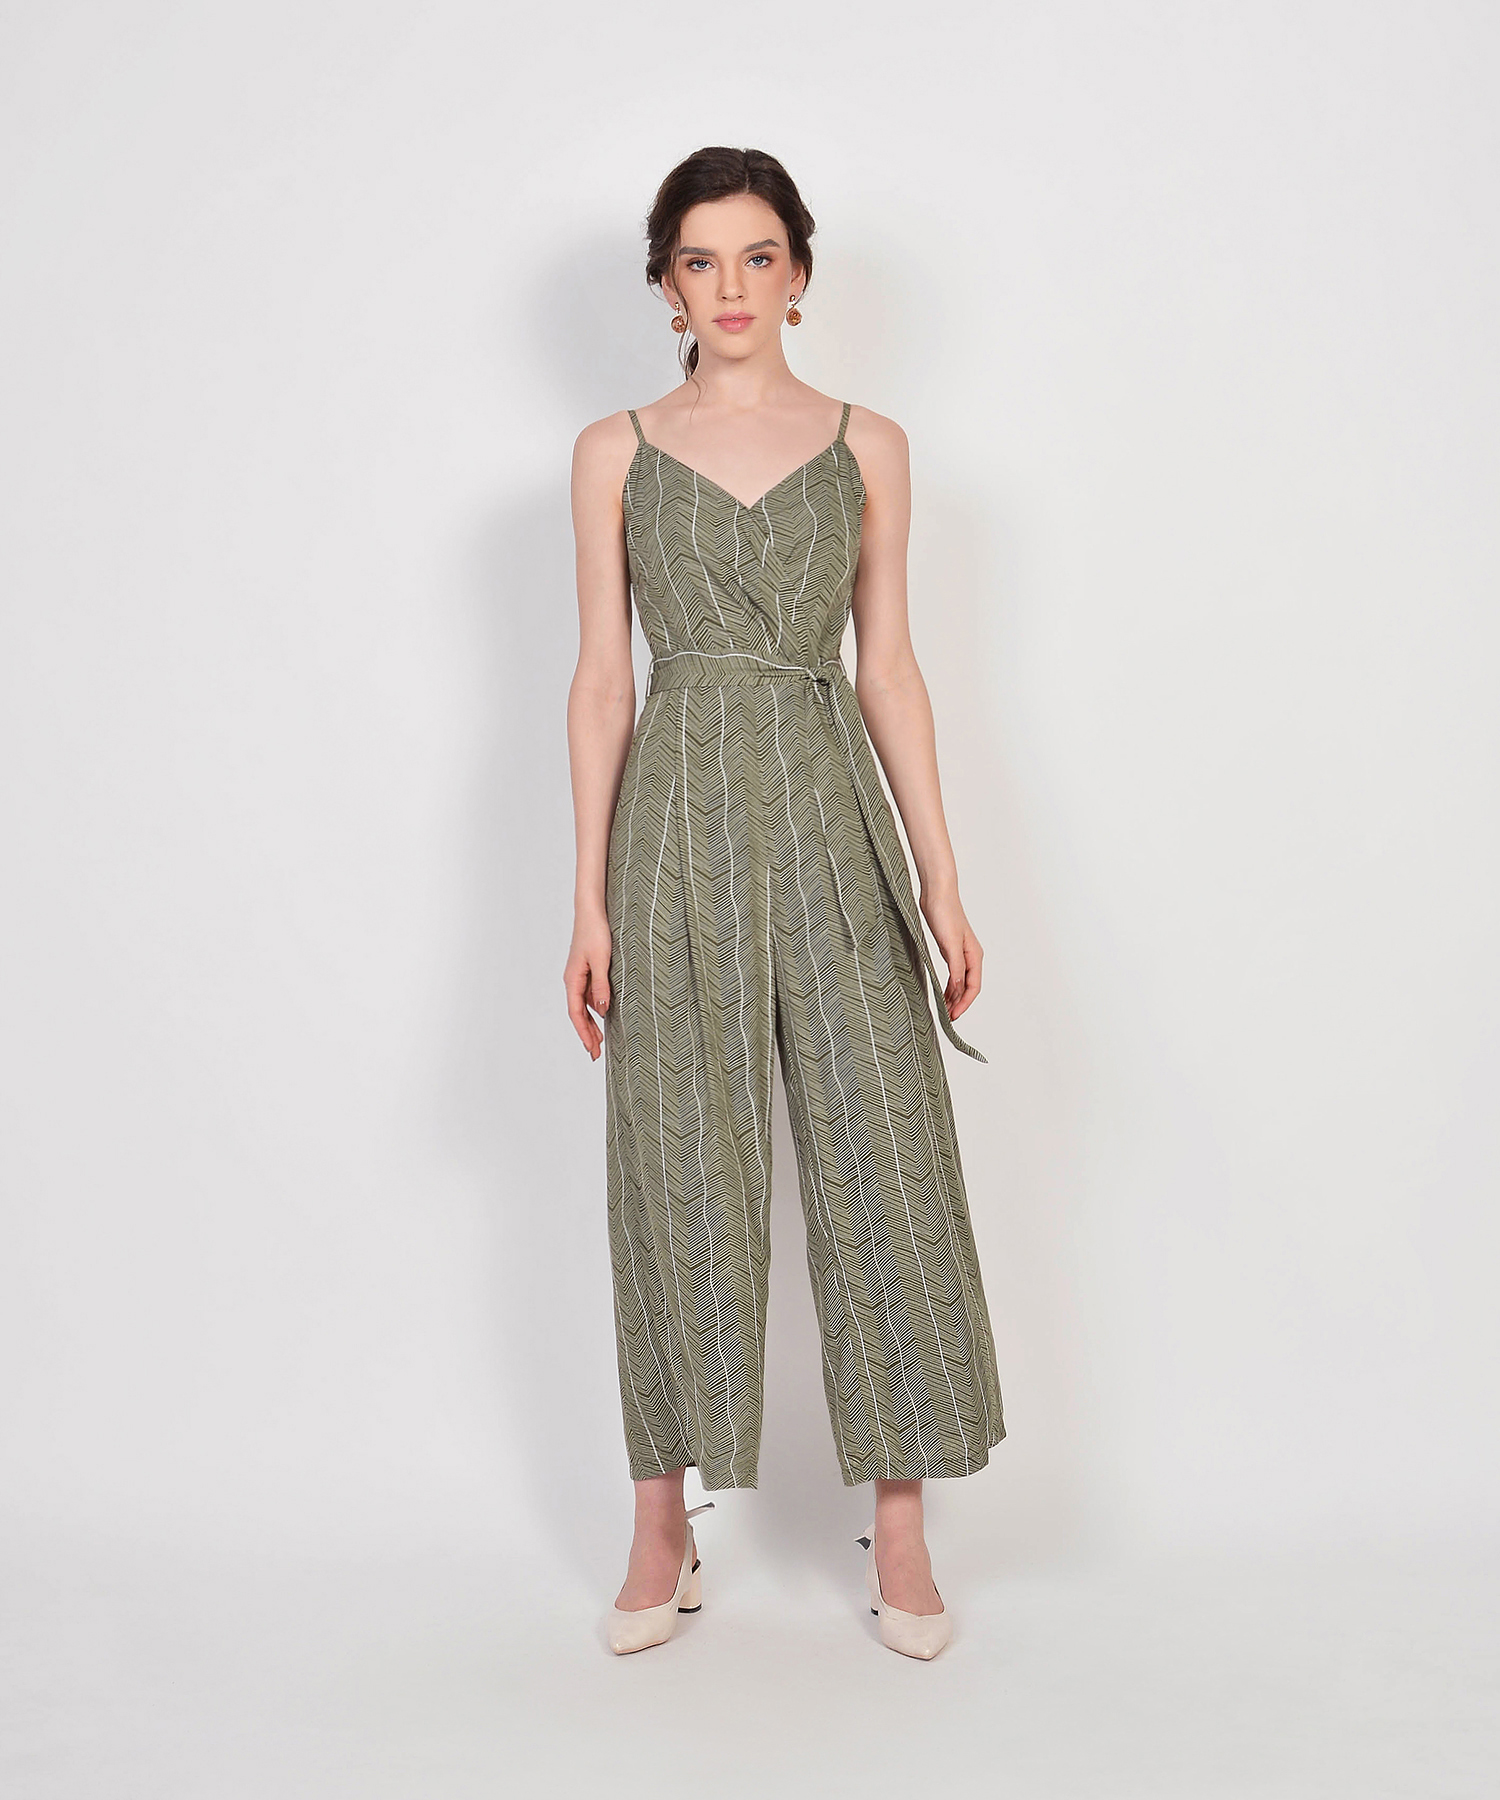 038c11e6eec Sierra Striped Jumpsuit - Olive